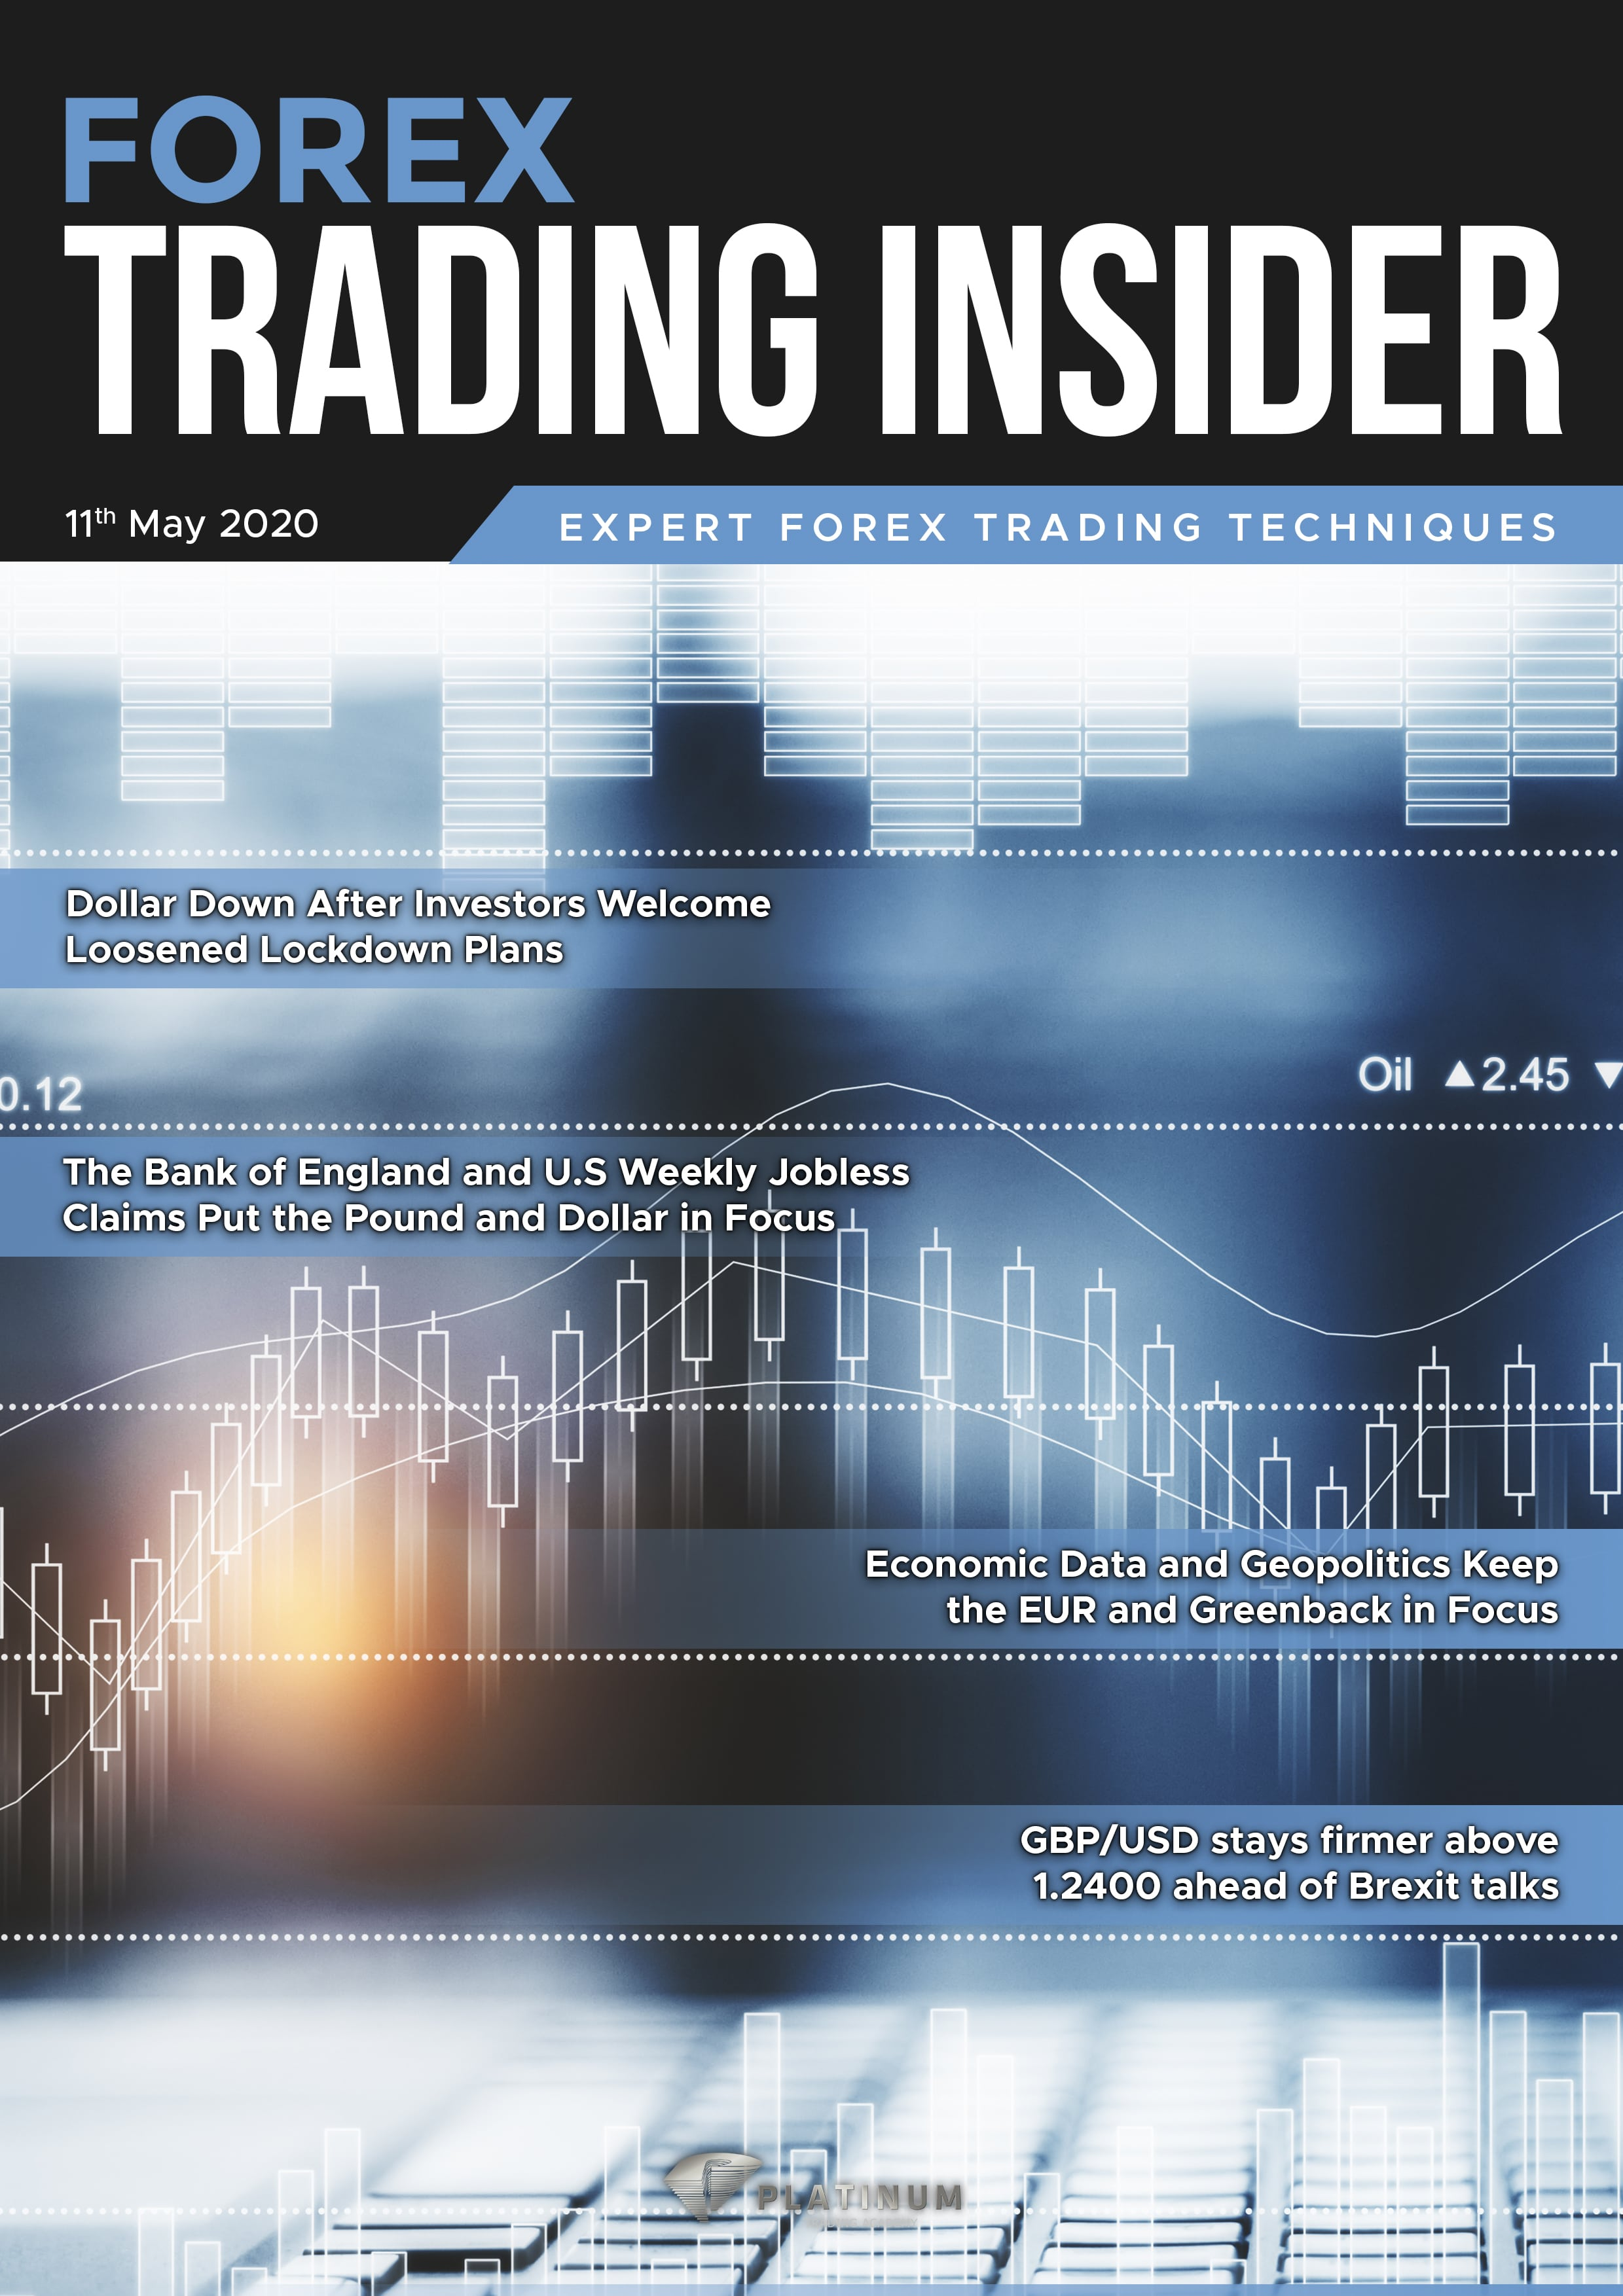 Trading Insider 11th May